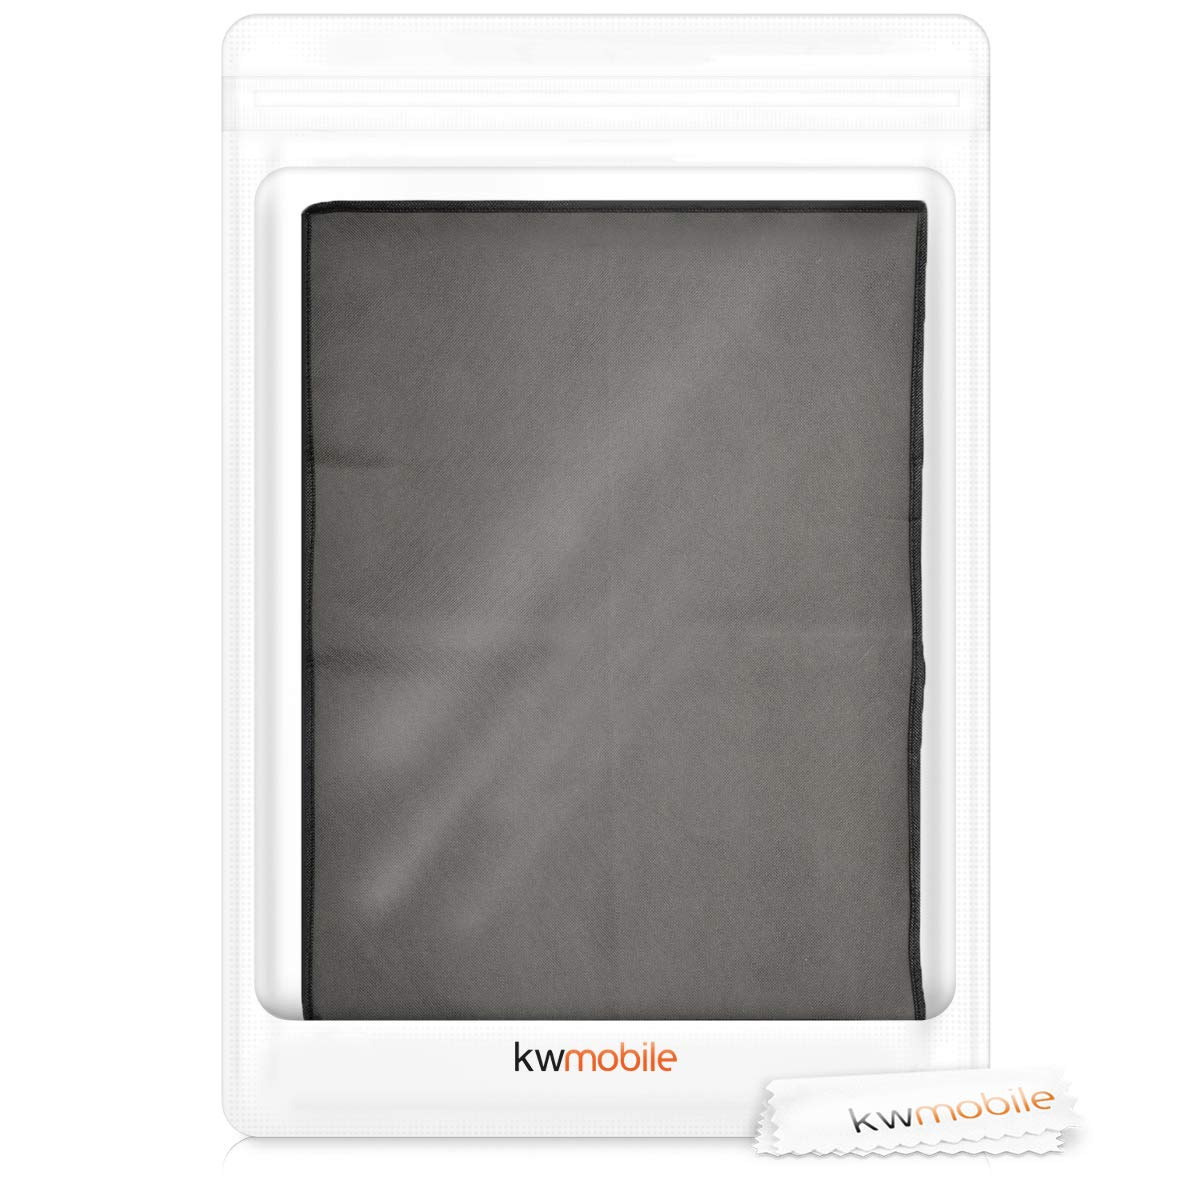 kwmobile Dust Cover for HP Tango X Dark Grey Printer Dust Protector